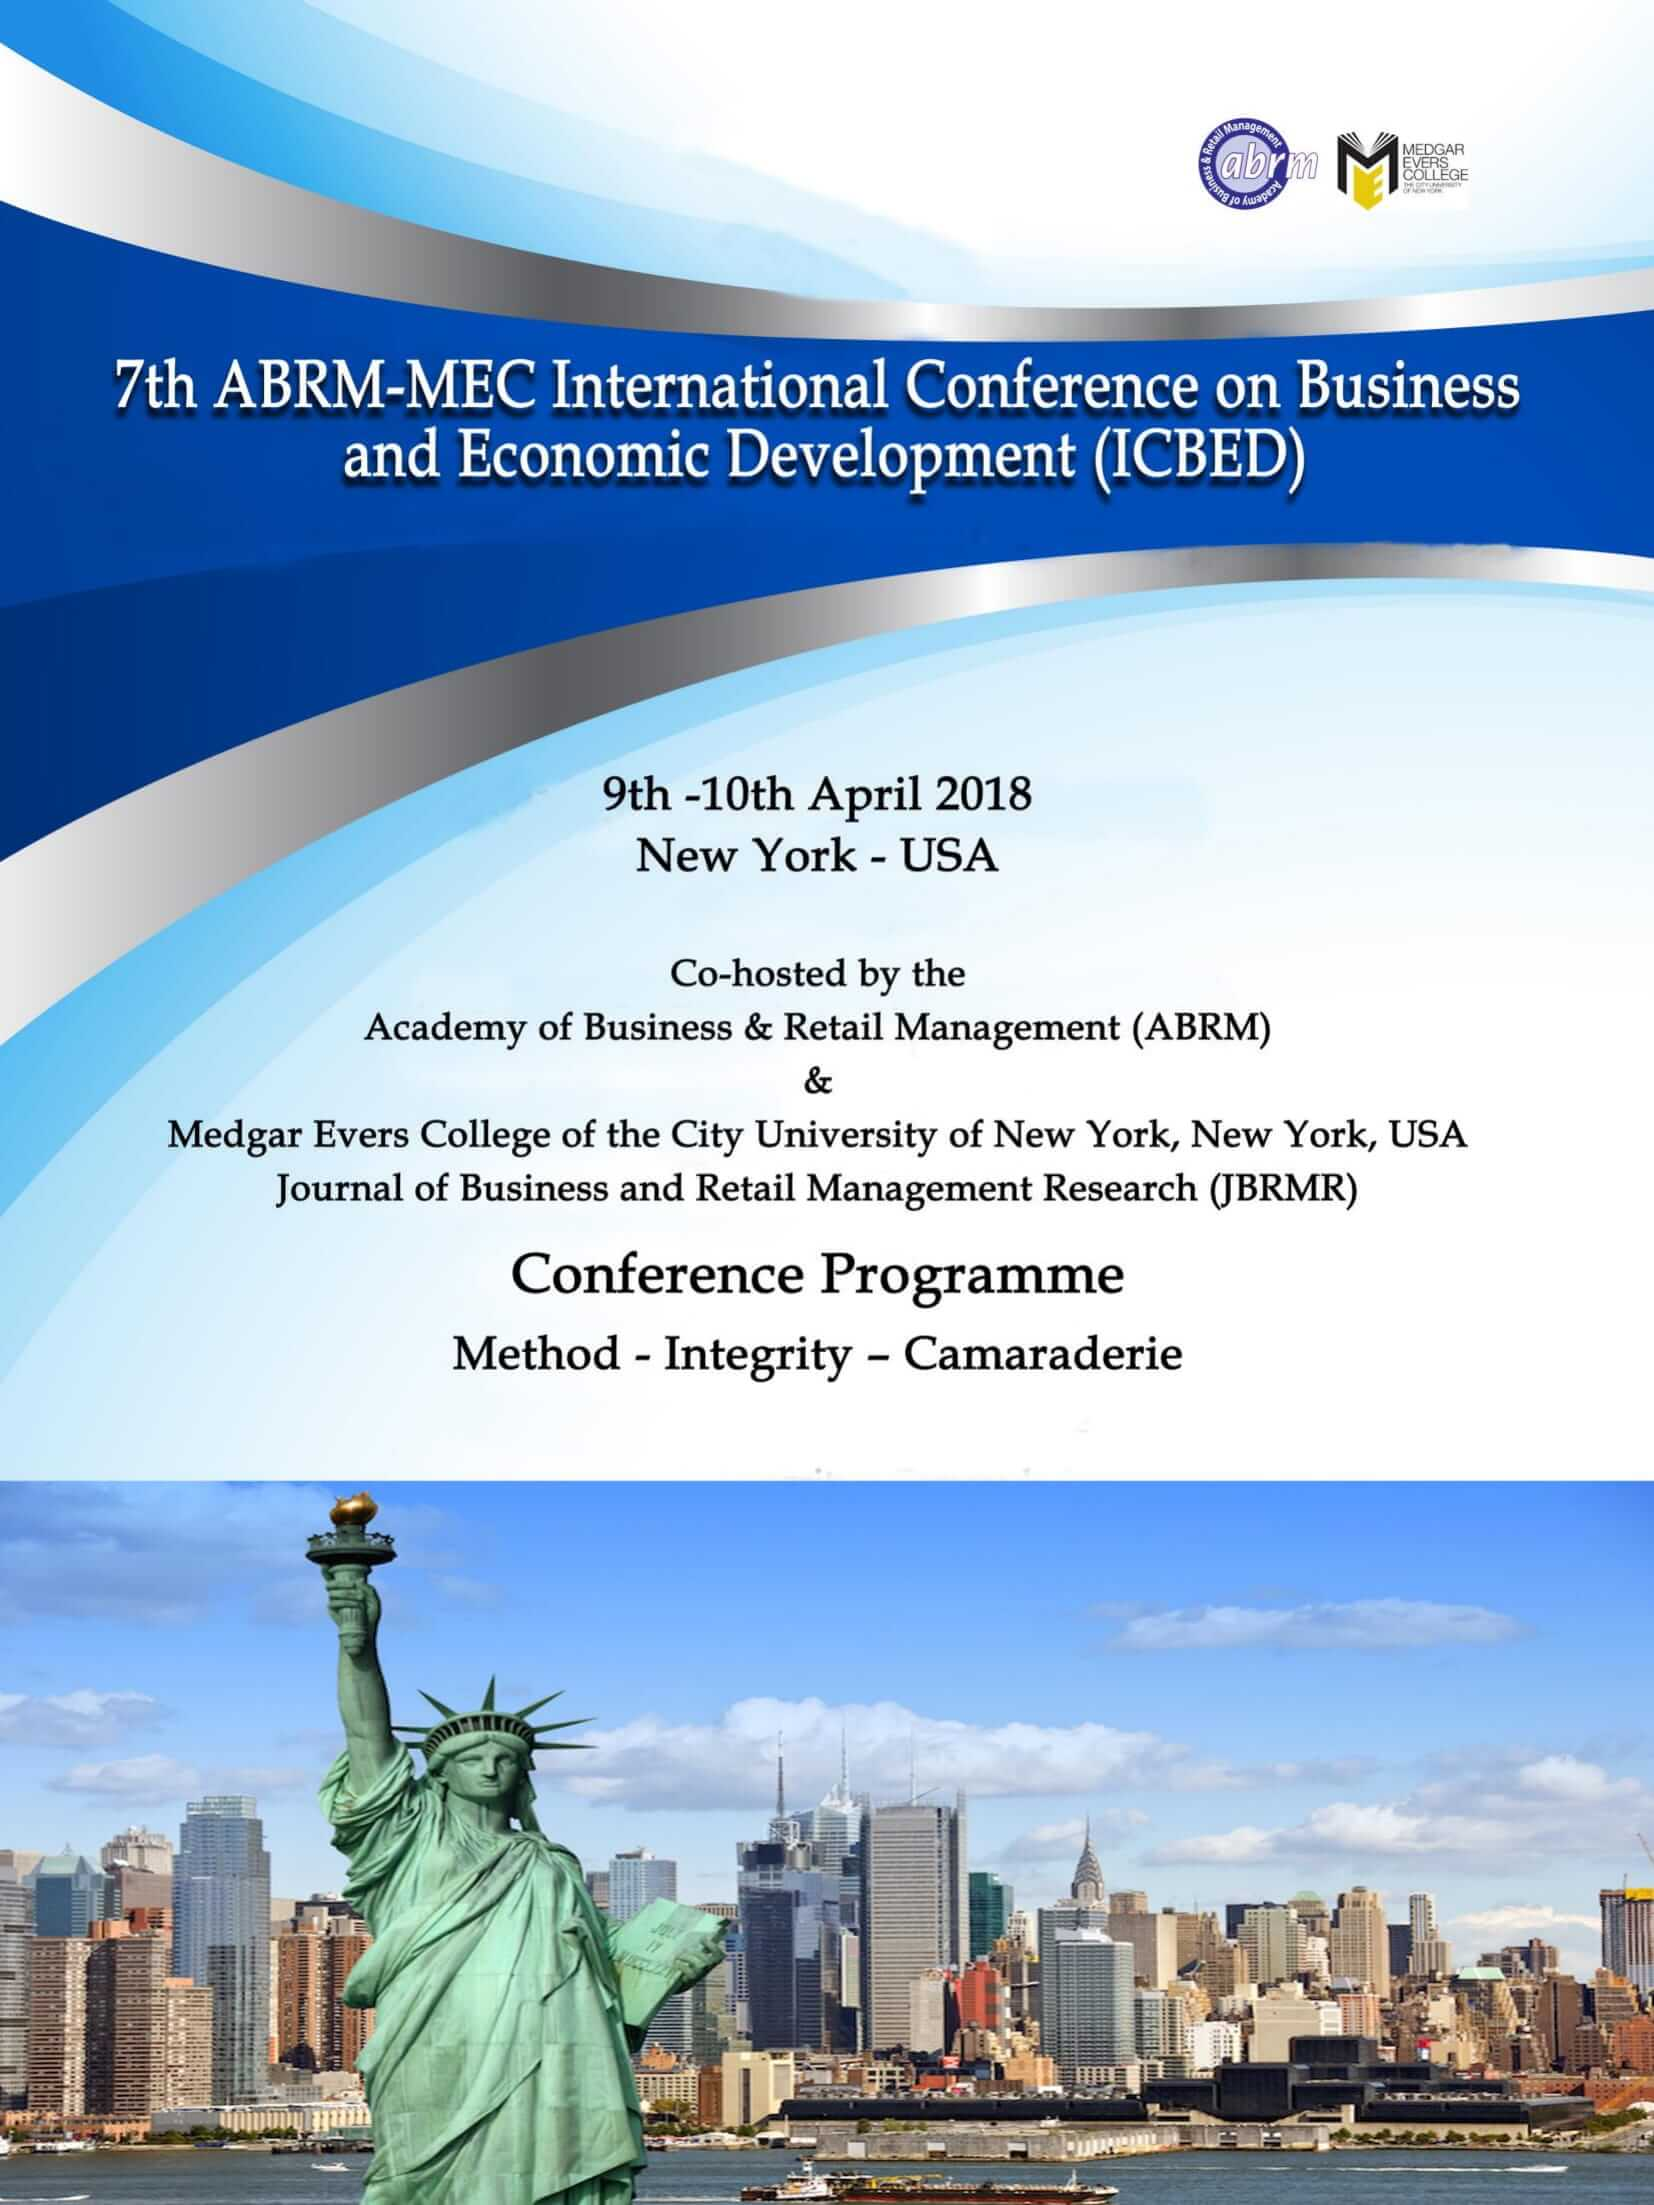 7th ABRM-MEC ICBED